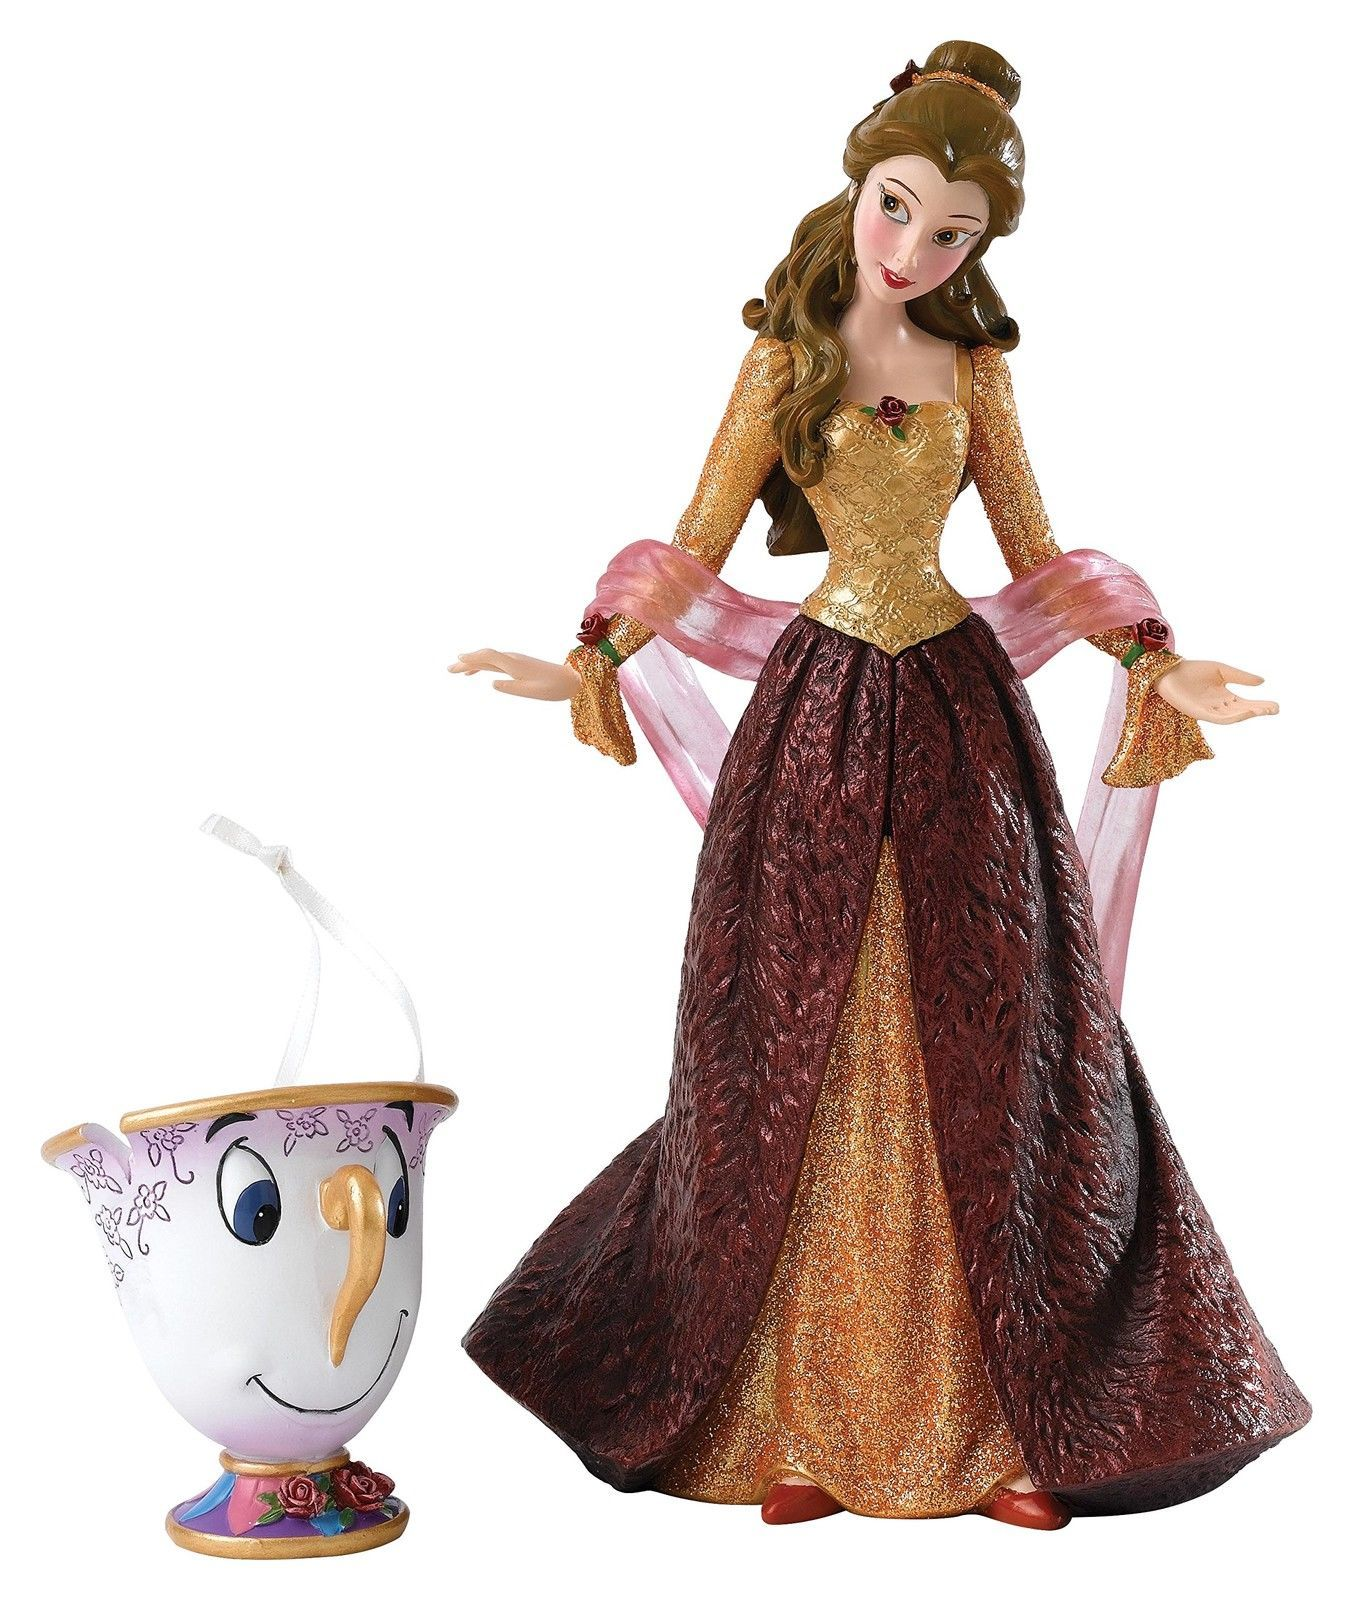 Enesco 4053349 Dssho Christmas Belle Chip Ho Figurine Beauty And The Beast Disney Traditions Disney Figurines